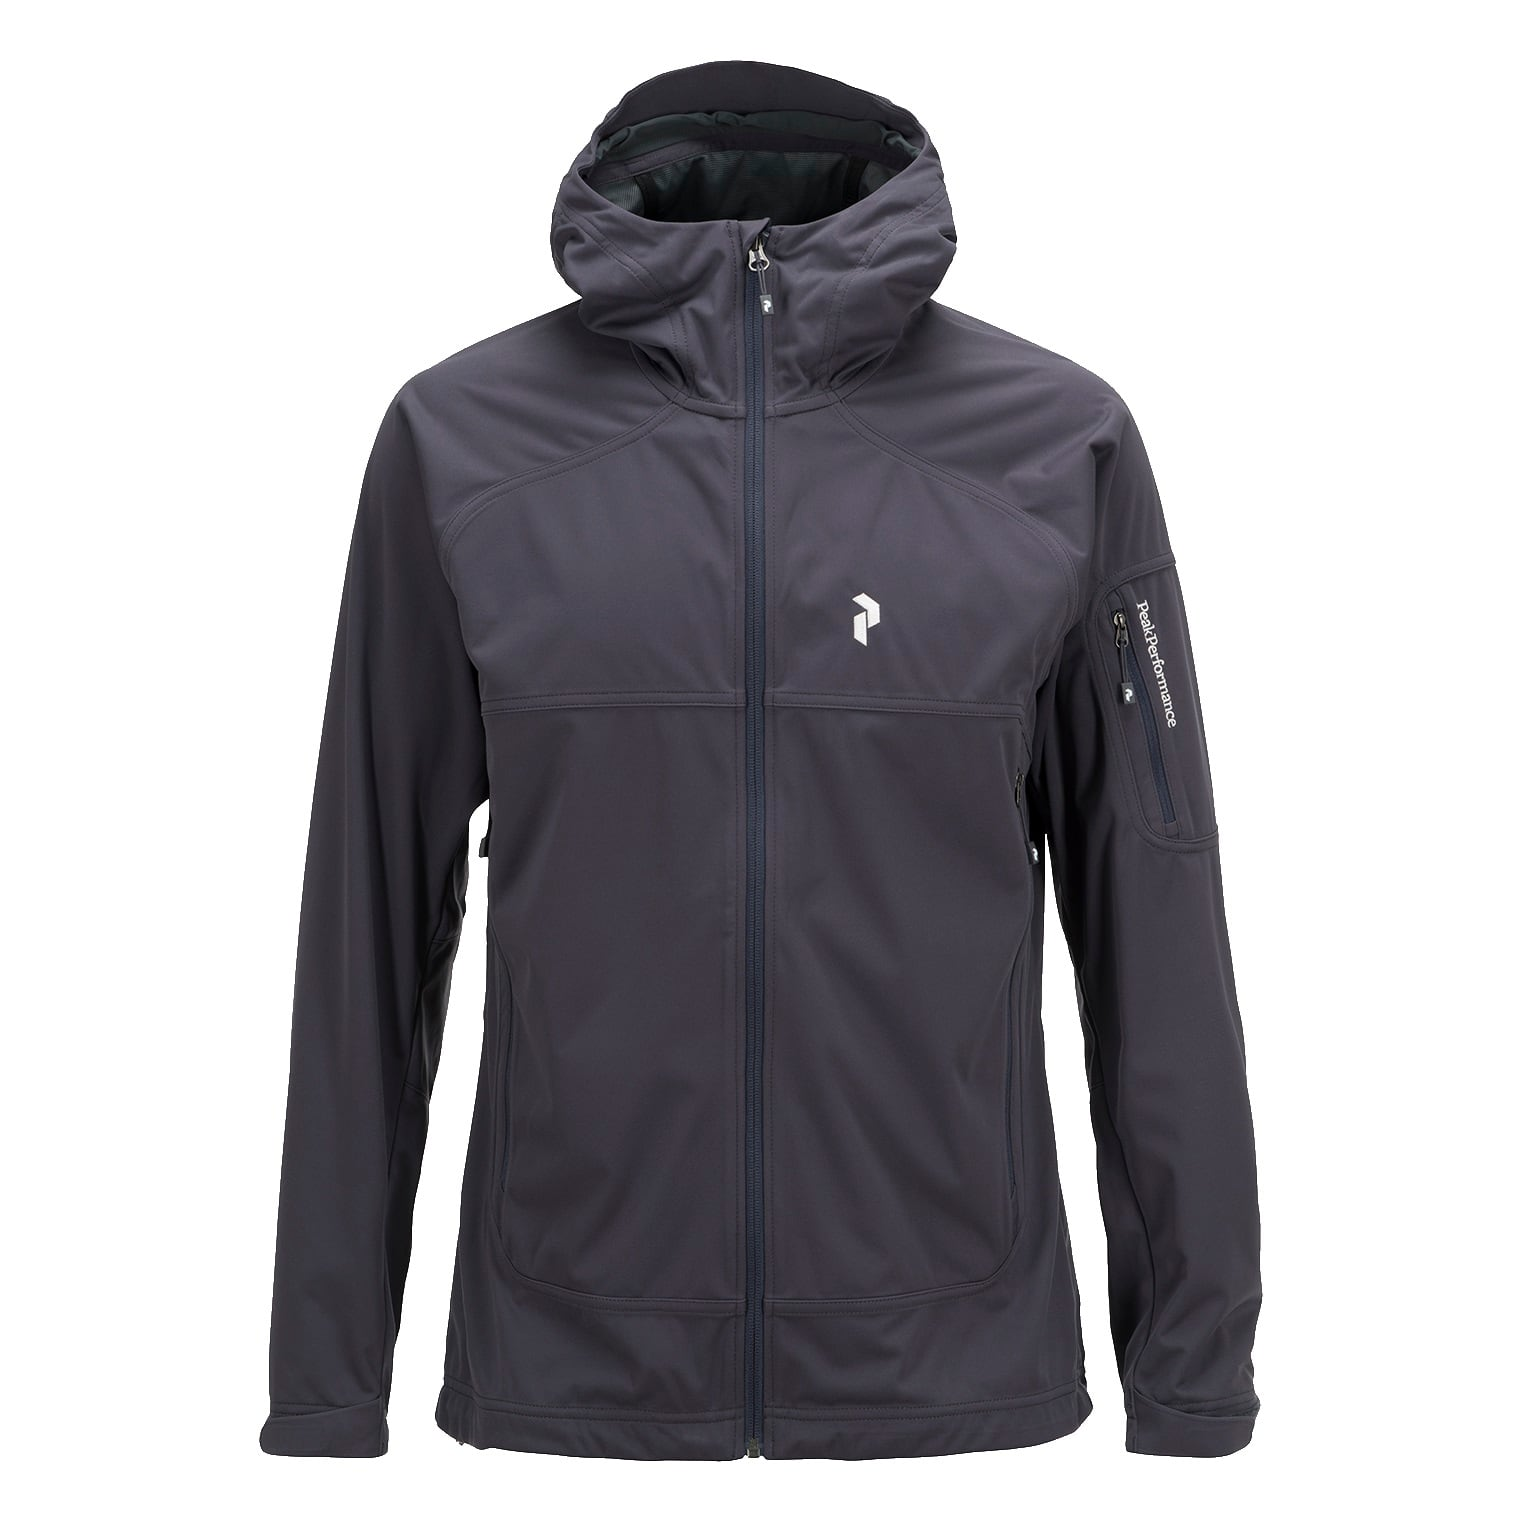 Kjøp Peak Performance Men's Aneto Jacket fra Outnorth